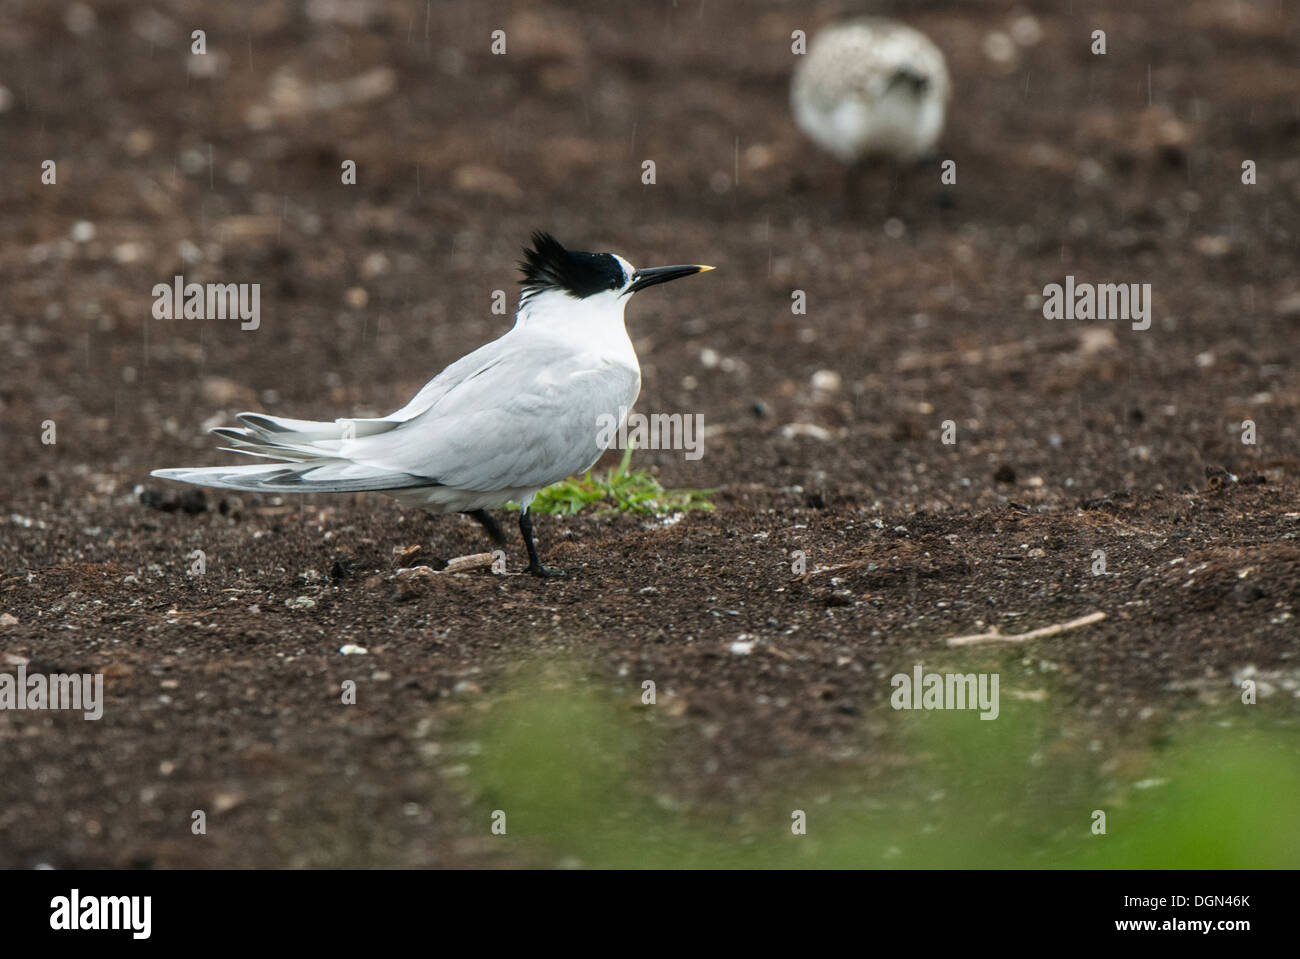 Tern on breeding grounds at Farne Islands - Stock Image